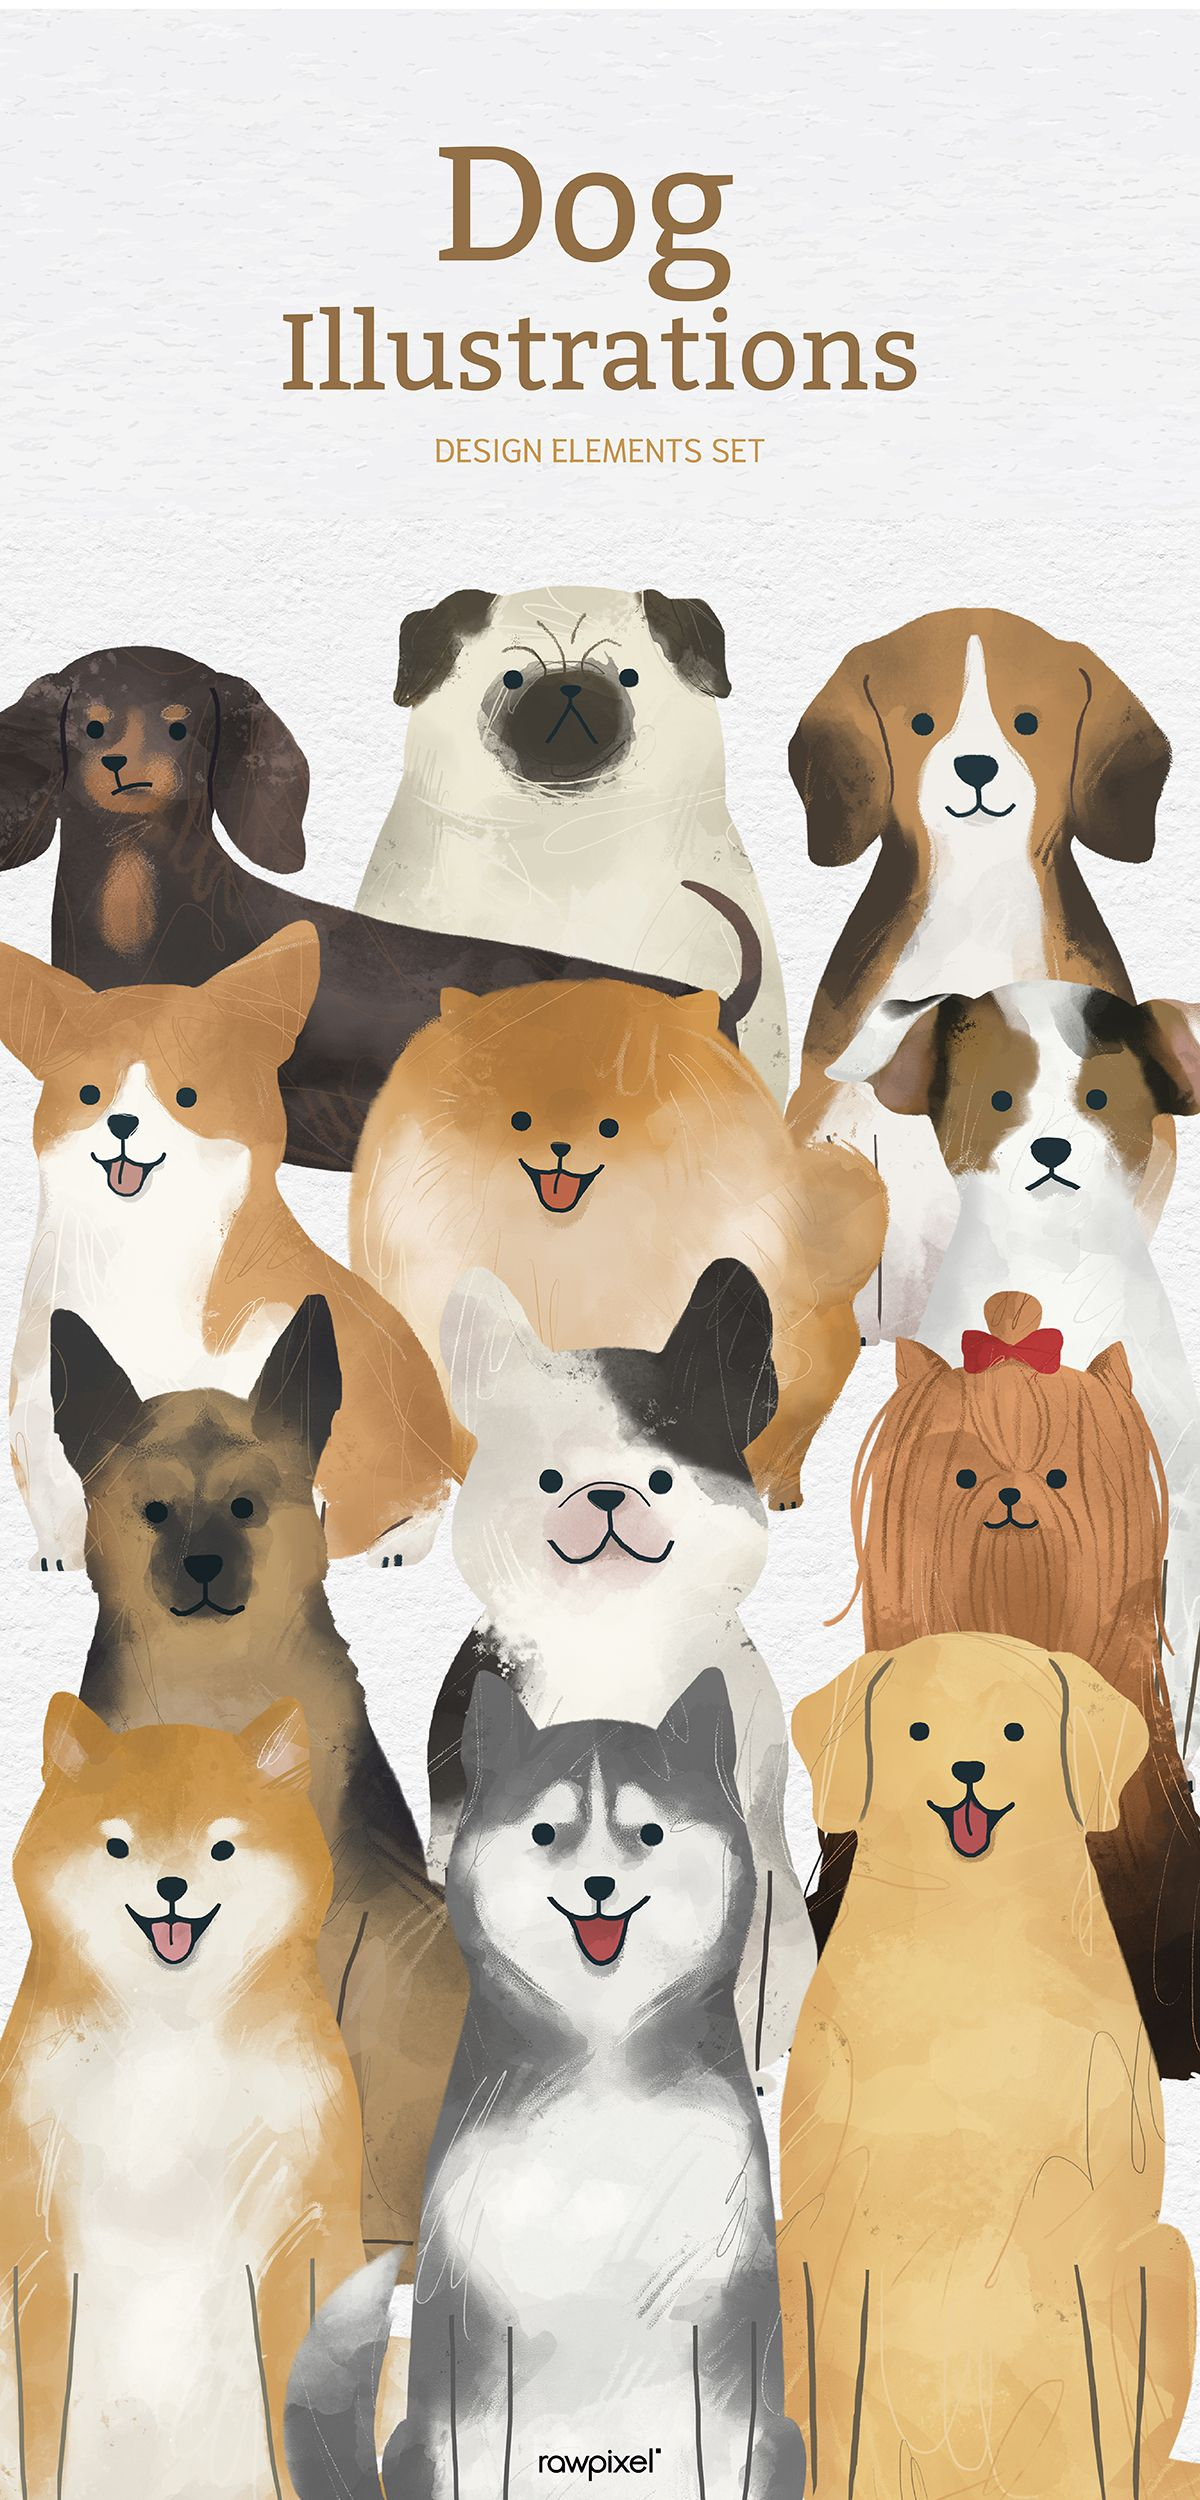 Download These Amazing Royalty Free Adorable Dog Illustrations As Well As Images Mockups Psd And Vectors At Rawpixel Com ในป 2020